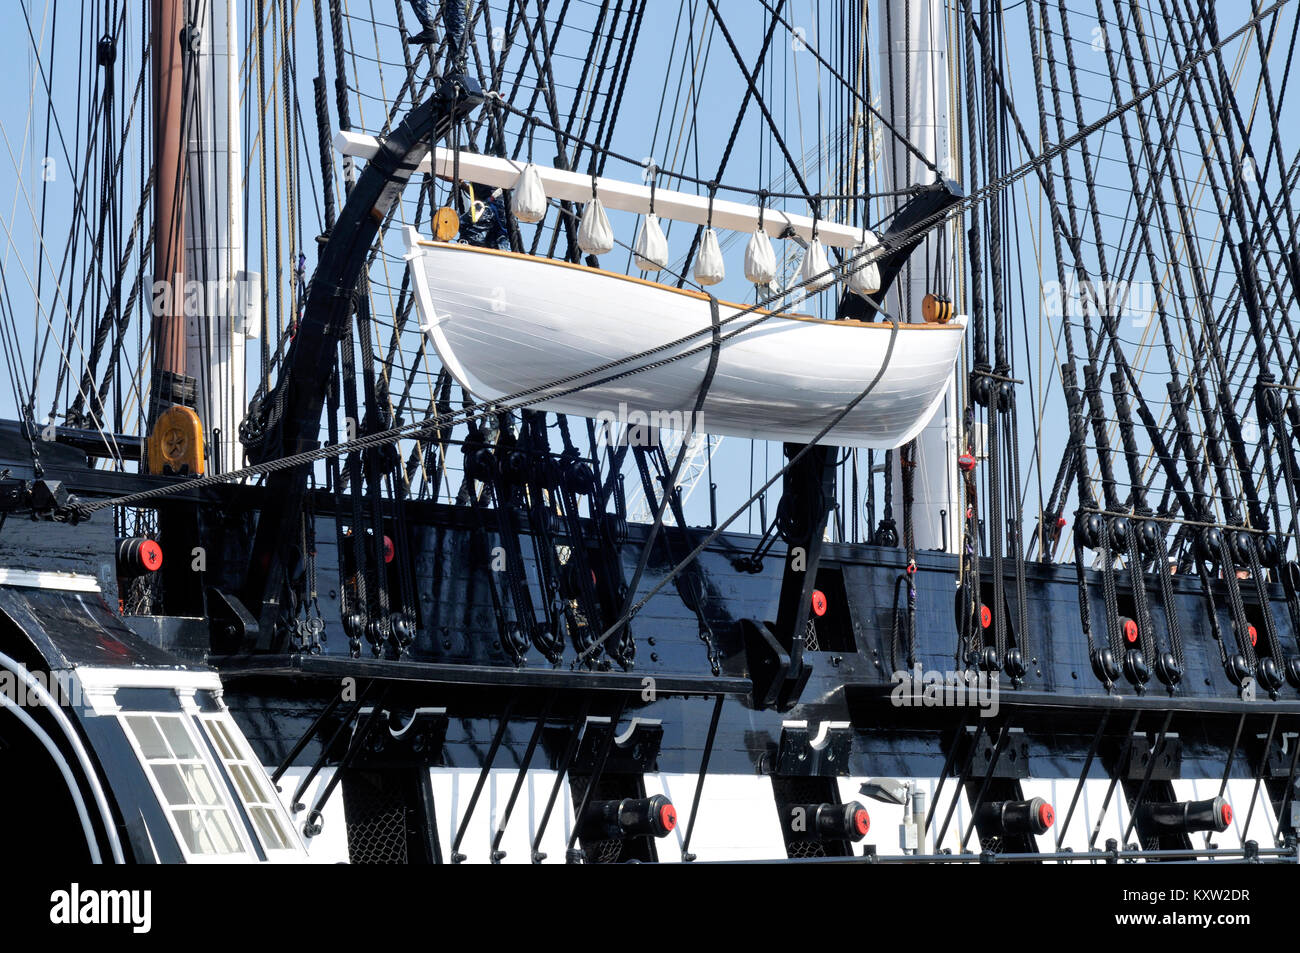 Whaleboat aka Lifeboat on the quarterdavits of the historic USS Constitution in Charlestown, Boston Massachusetts - Stock Image